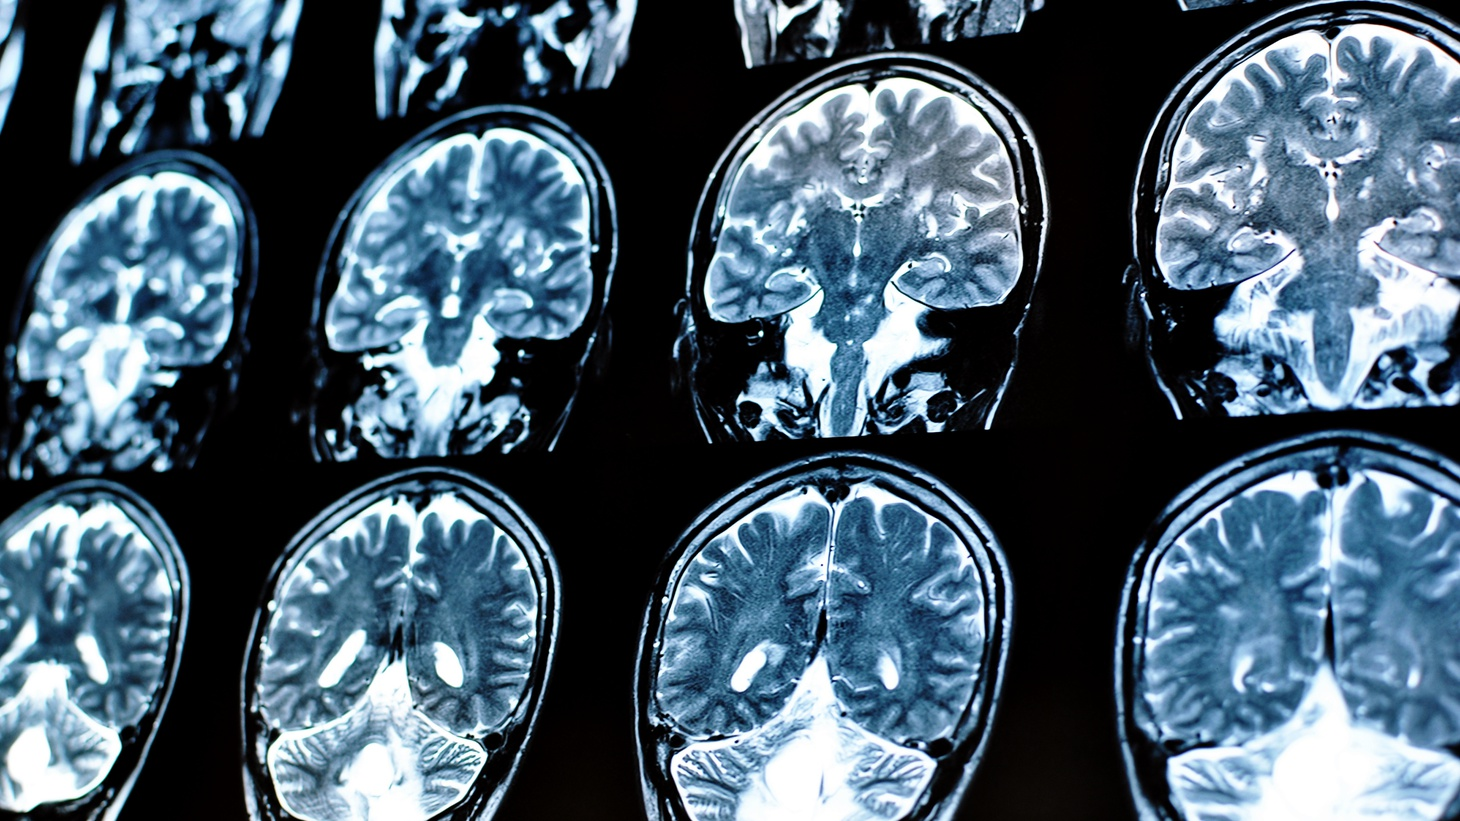 Electronic stimulation to the brain could help maintain that balance and communication between different regions of the brain.